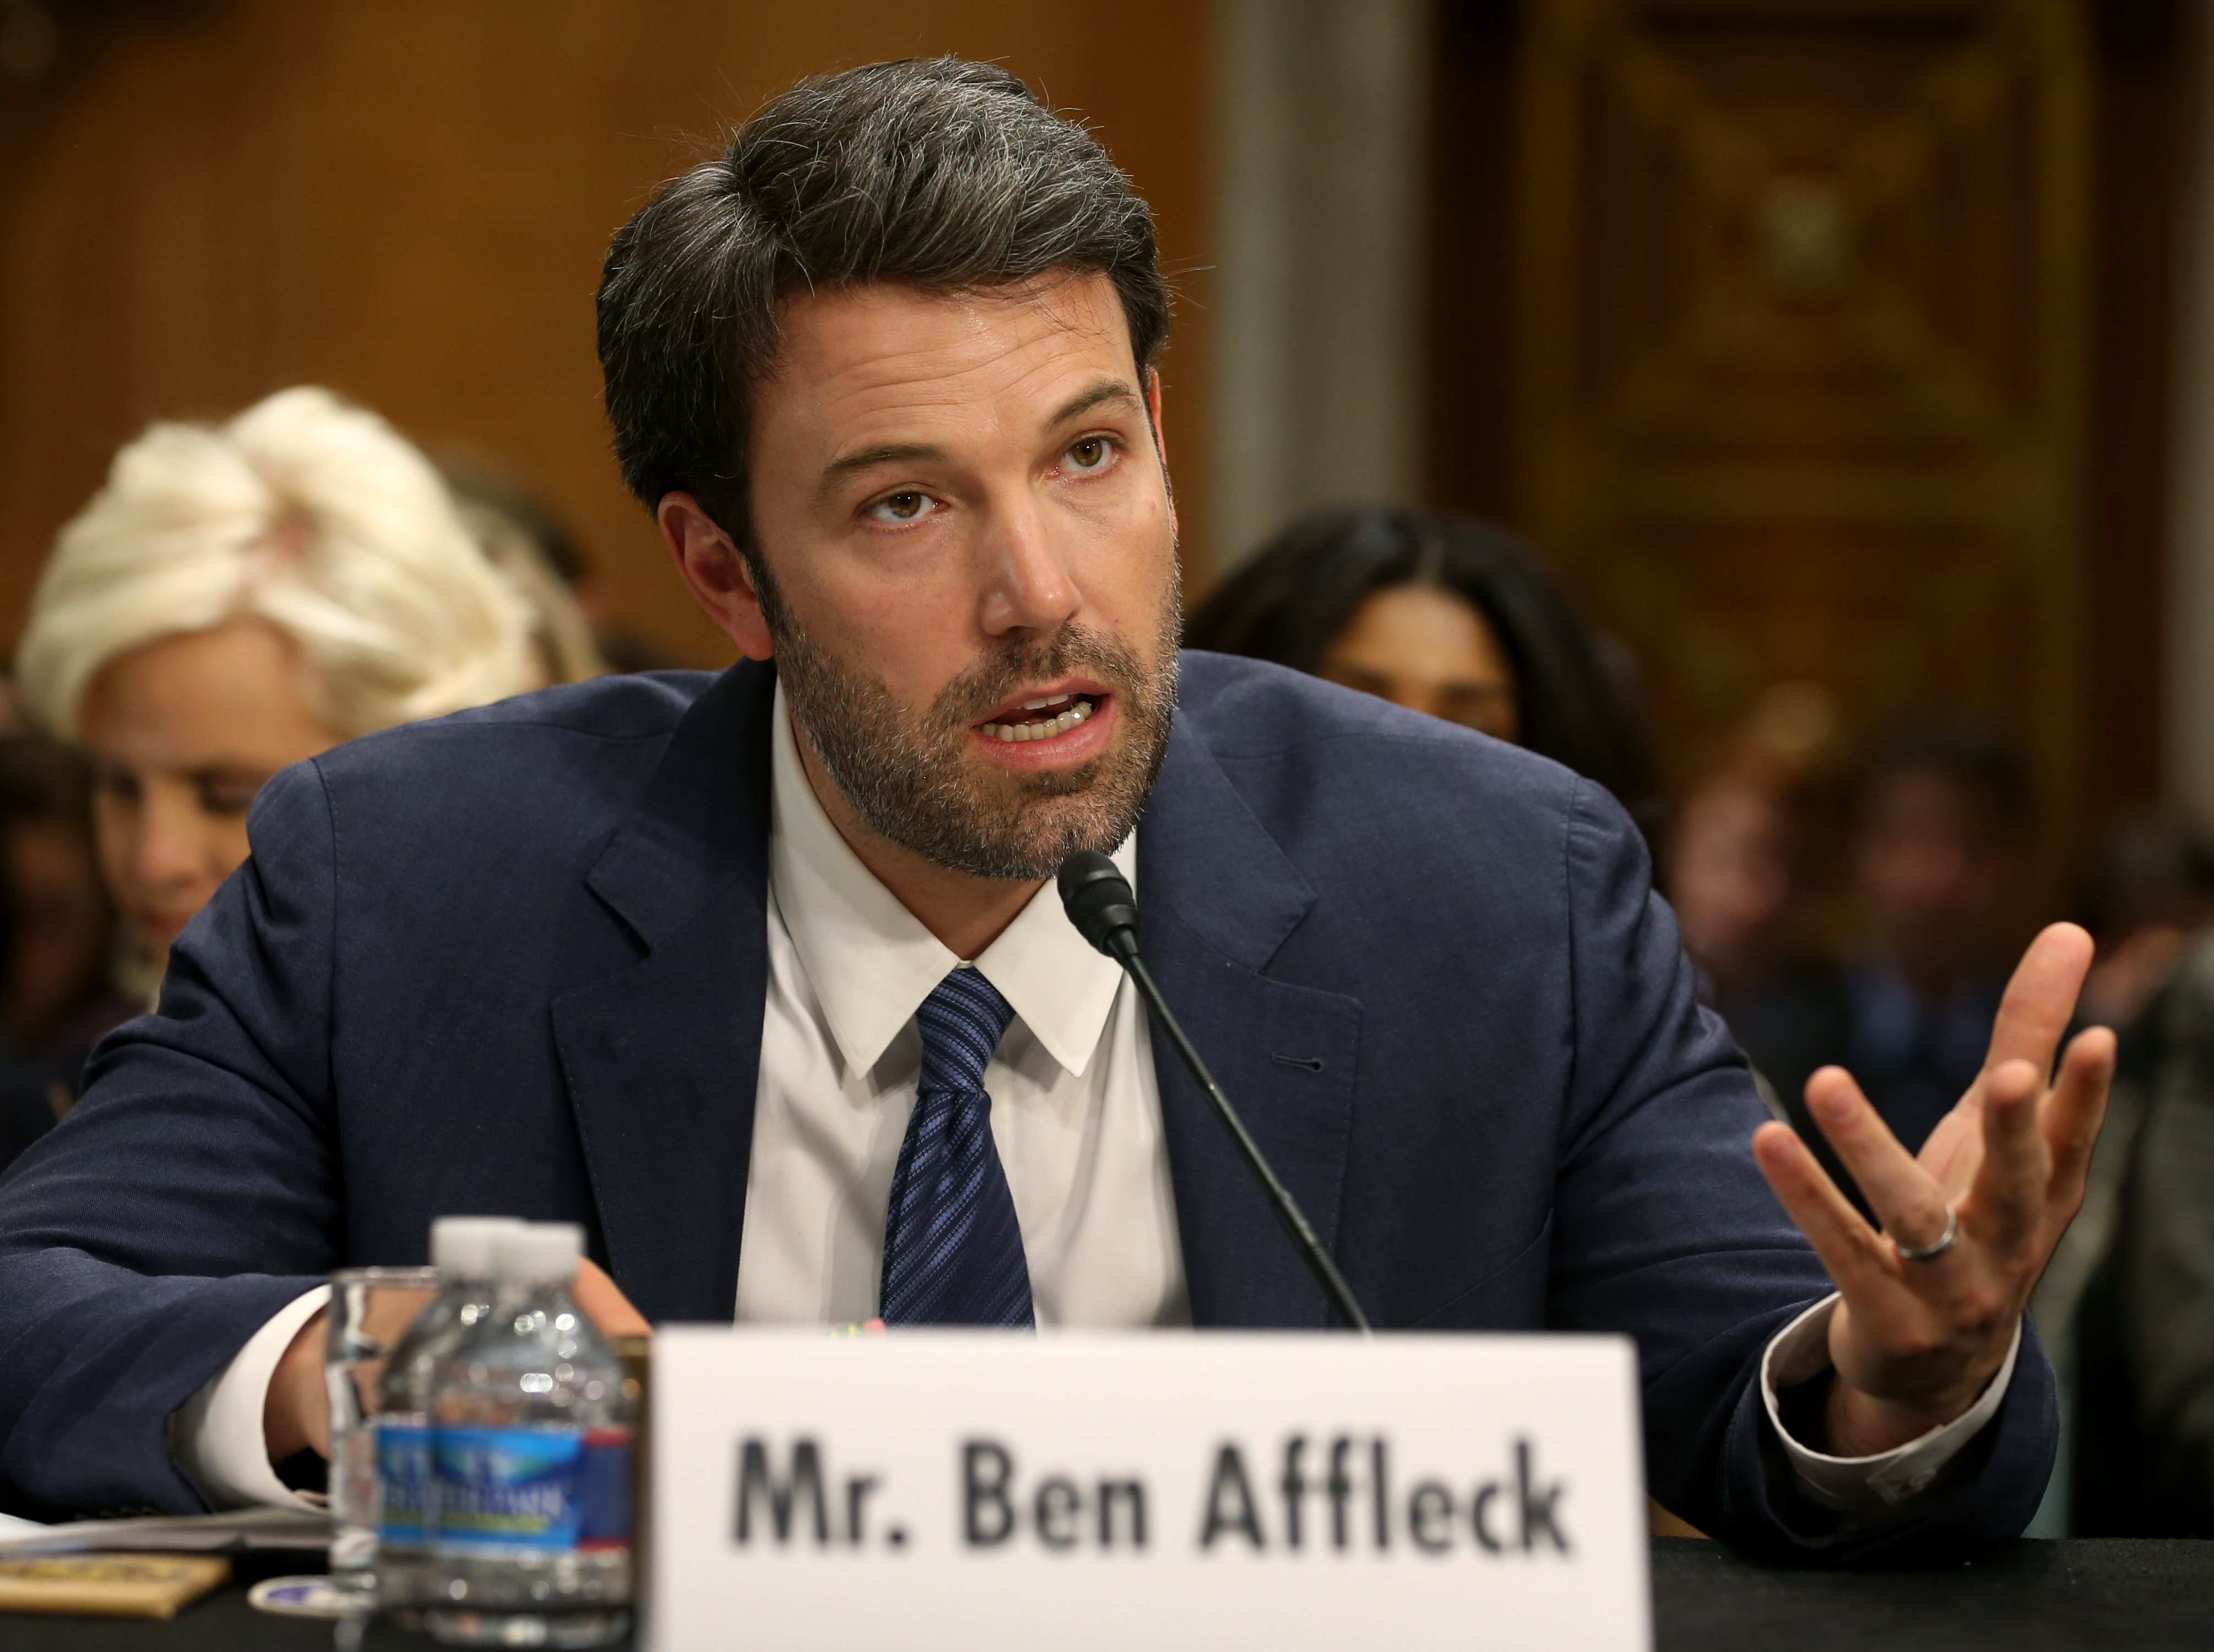 Ben Affleck during his 2014 testimony in the Senate Foreign Relations Committee hearing in Washington D.C. | Photo: Getty Images